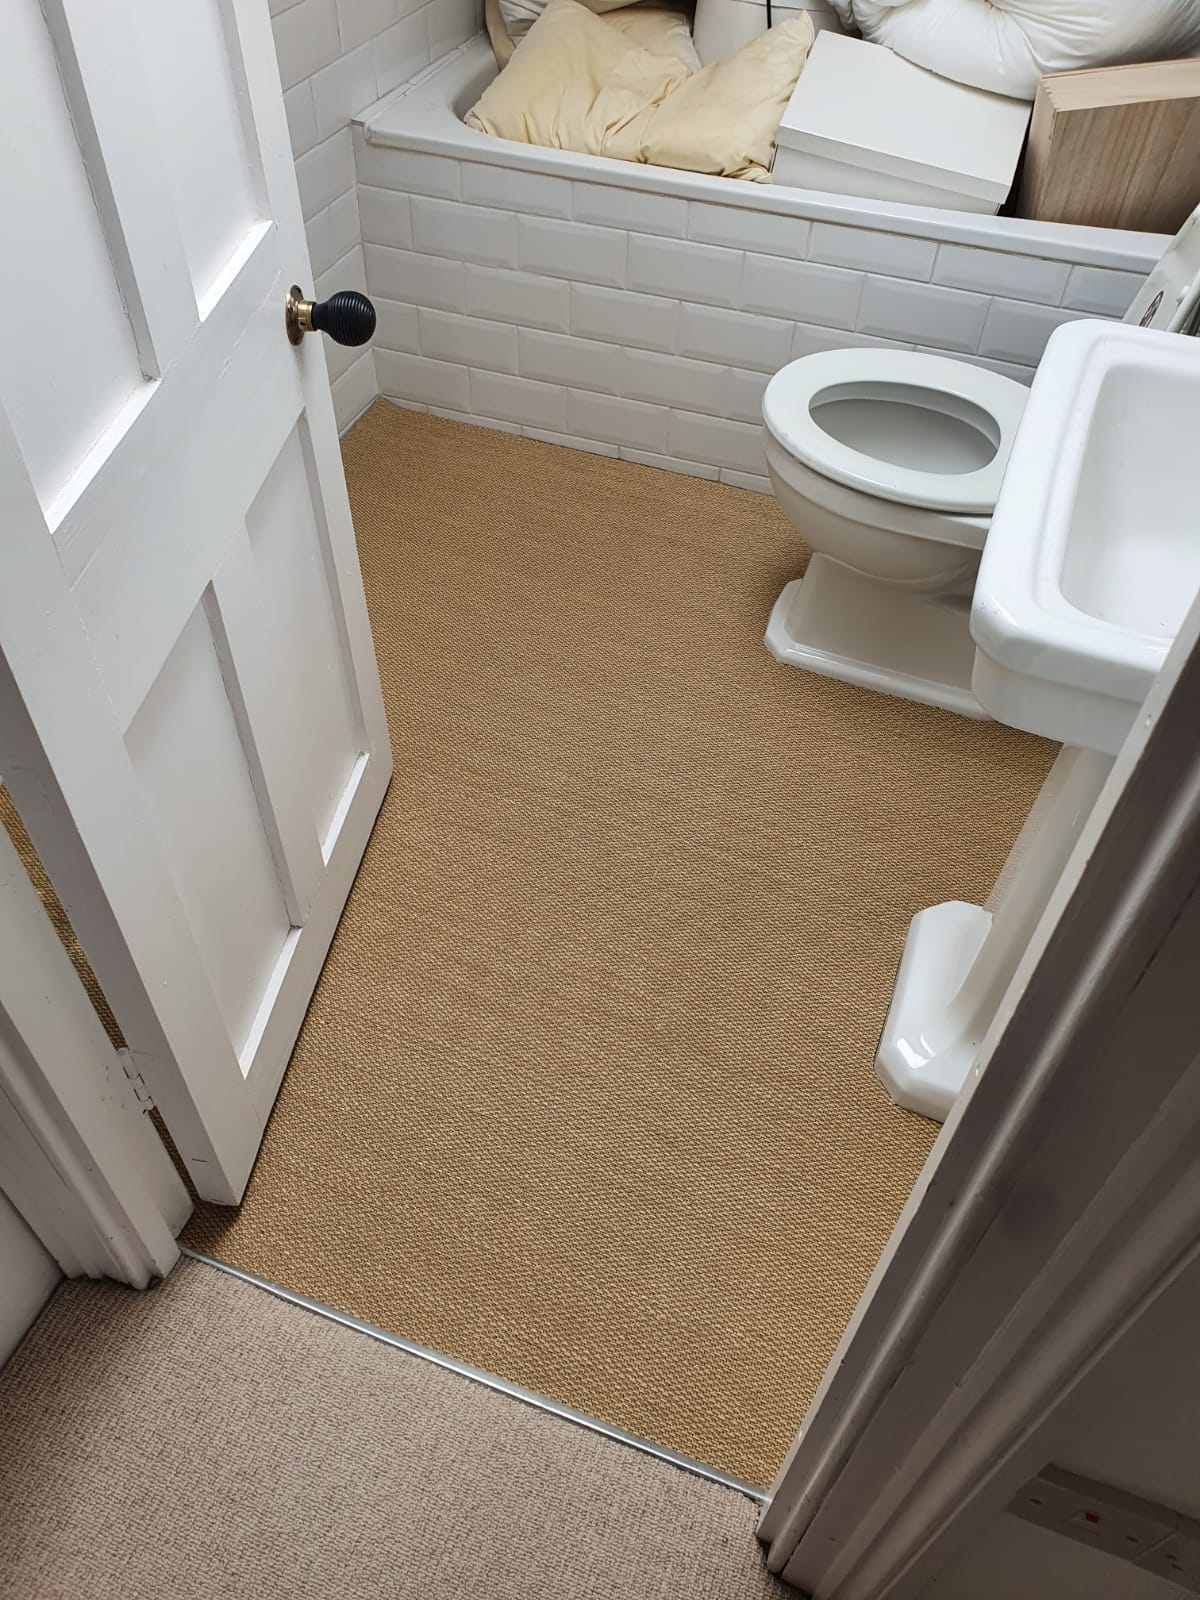 Clarendon Carpets Harrow Beige Carpet in Chelsea 1